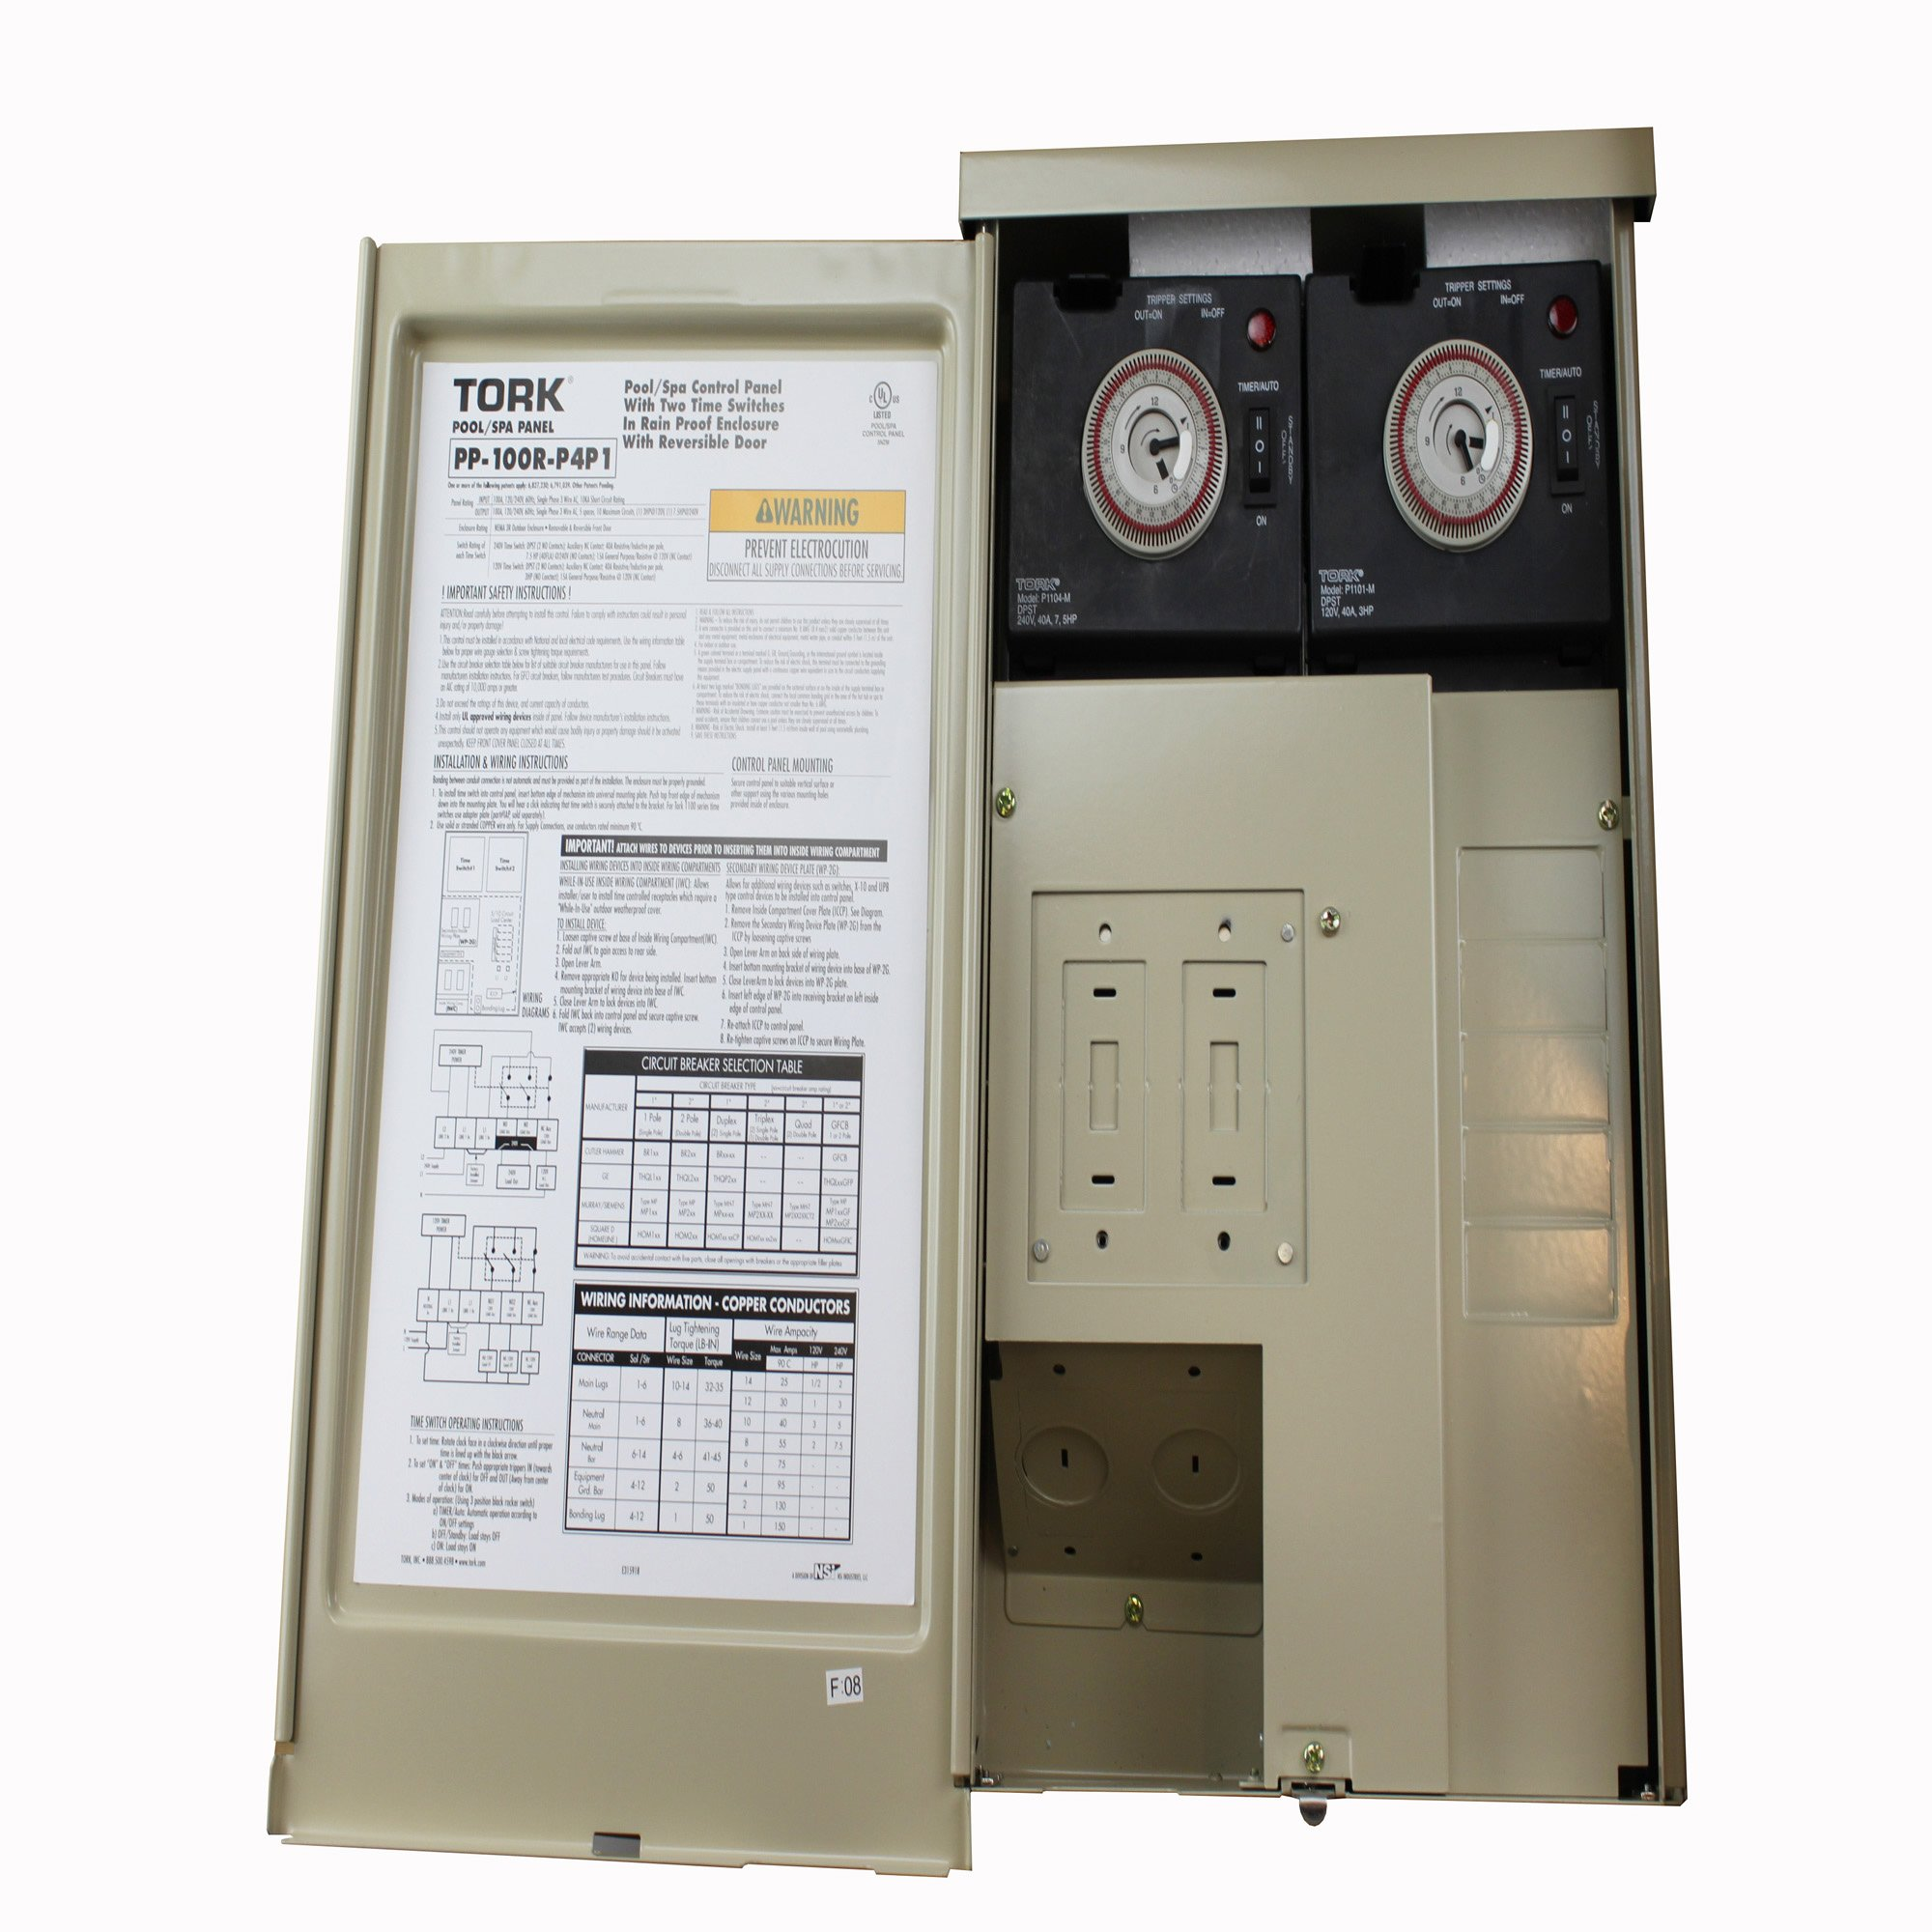 PP Panel Series Pool and Spa Control Panels with Time Swtich, 240/120 VAC Control Input, 100 Amp, 5/10 Circuit Breaker Base